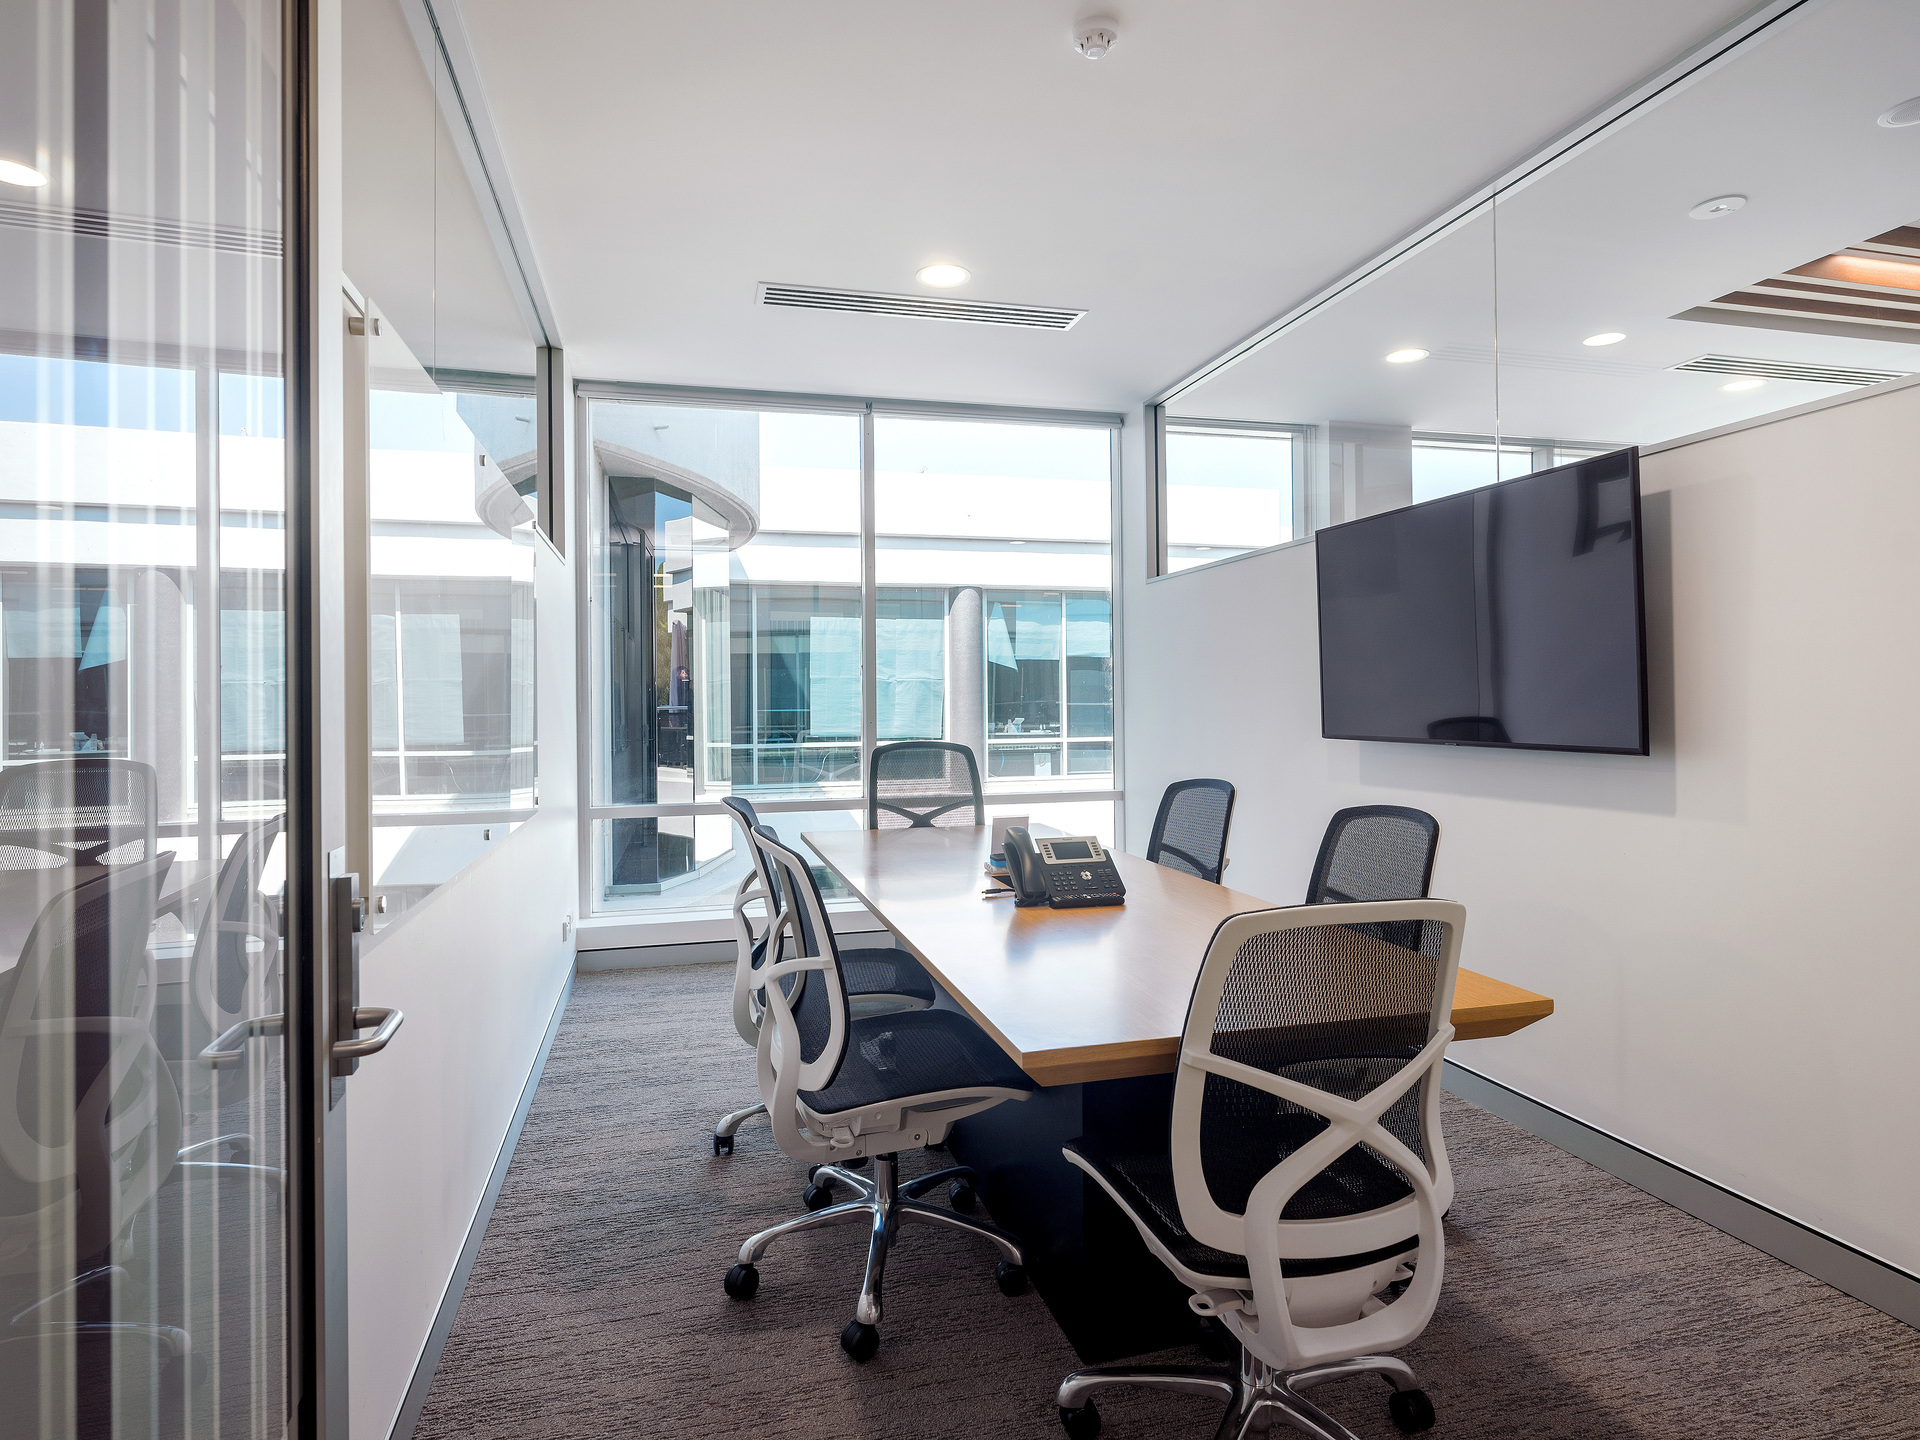 6 person office $4300 per month including car park